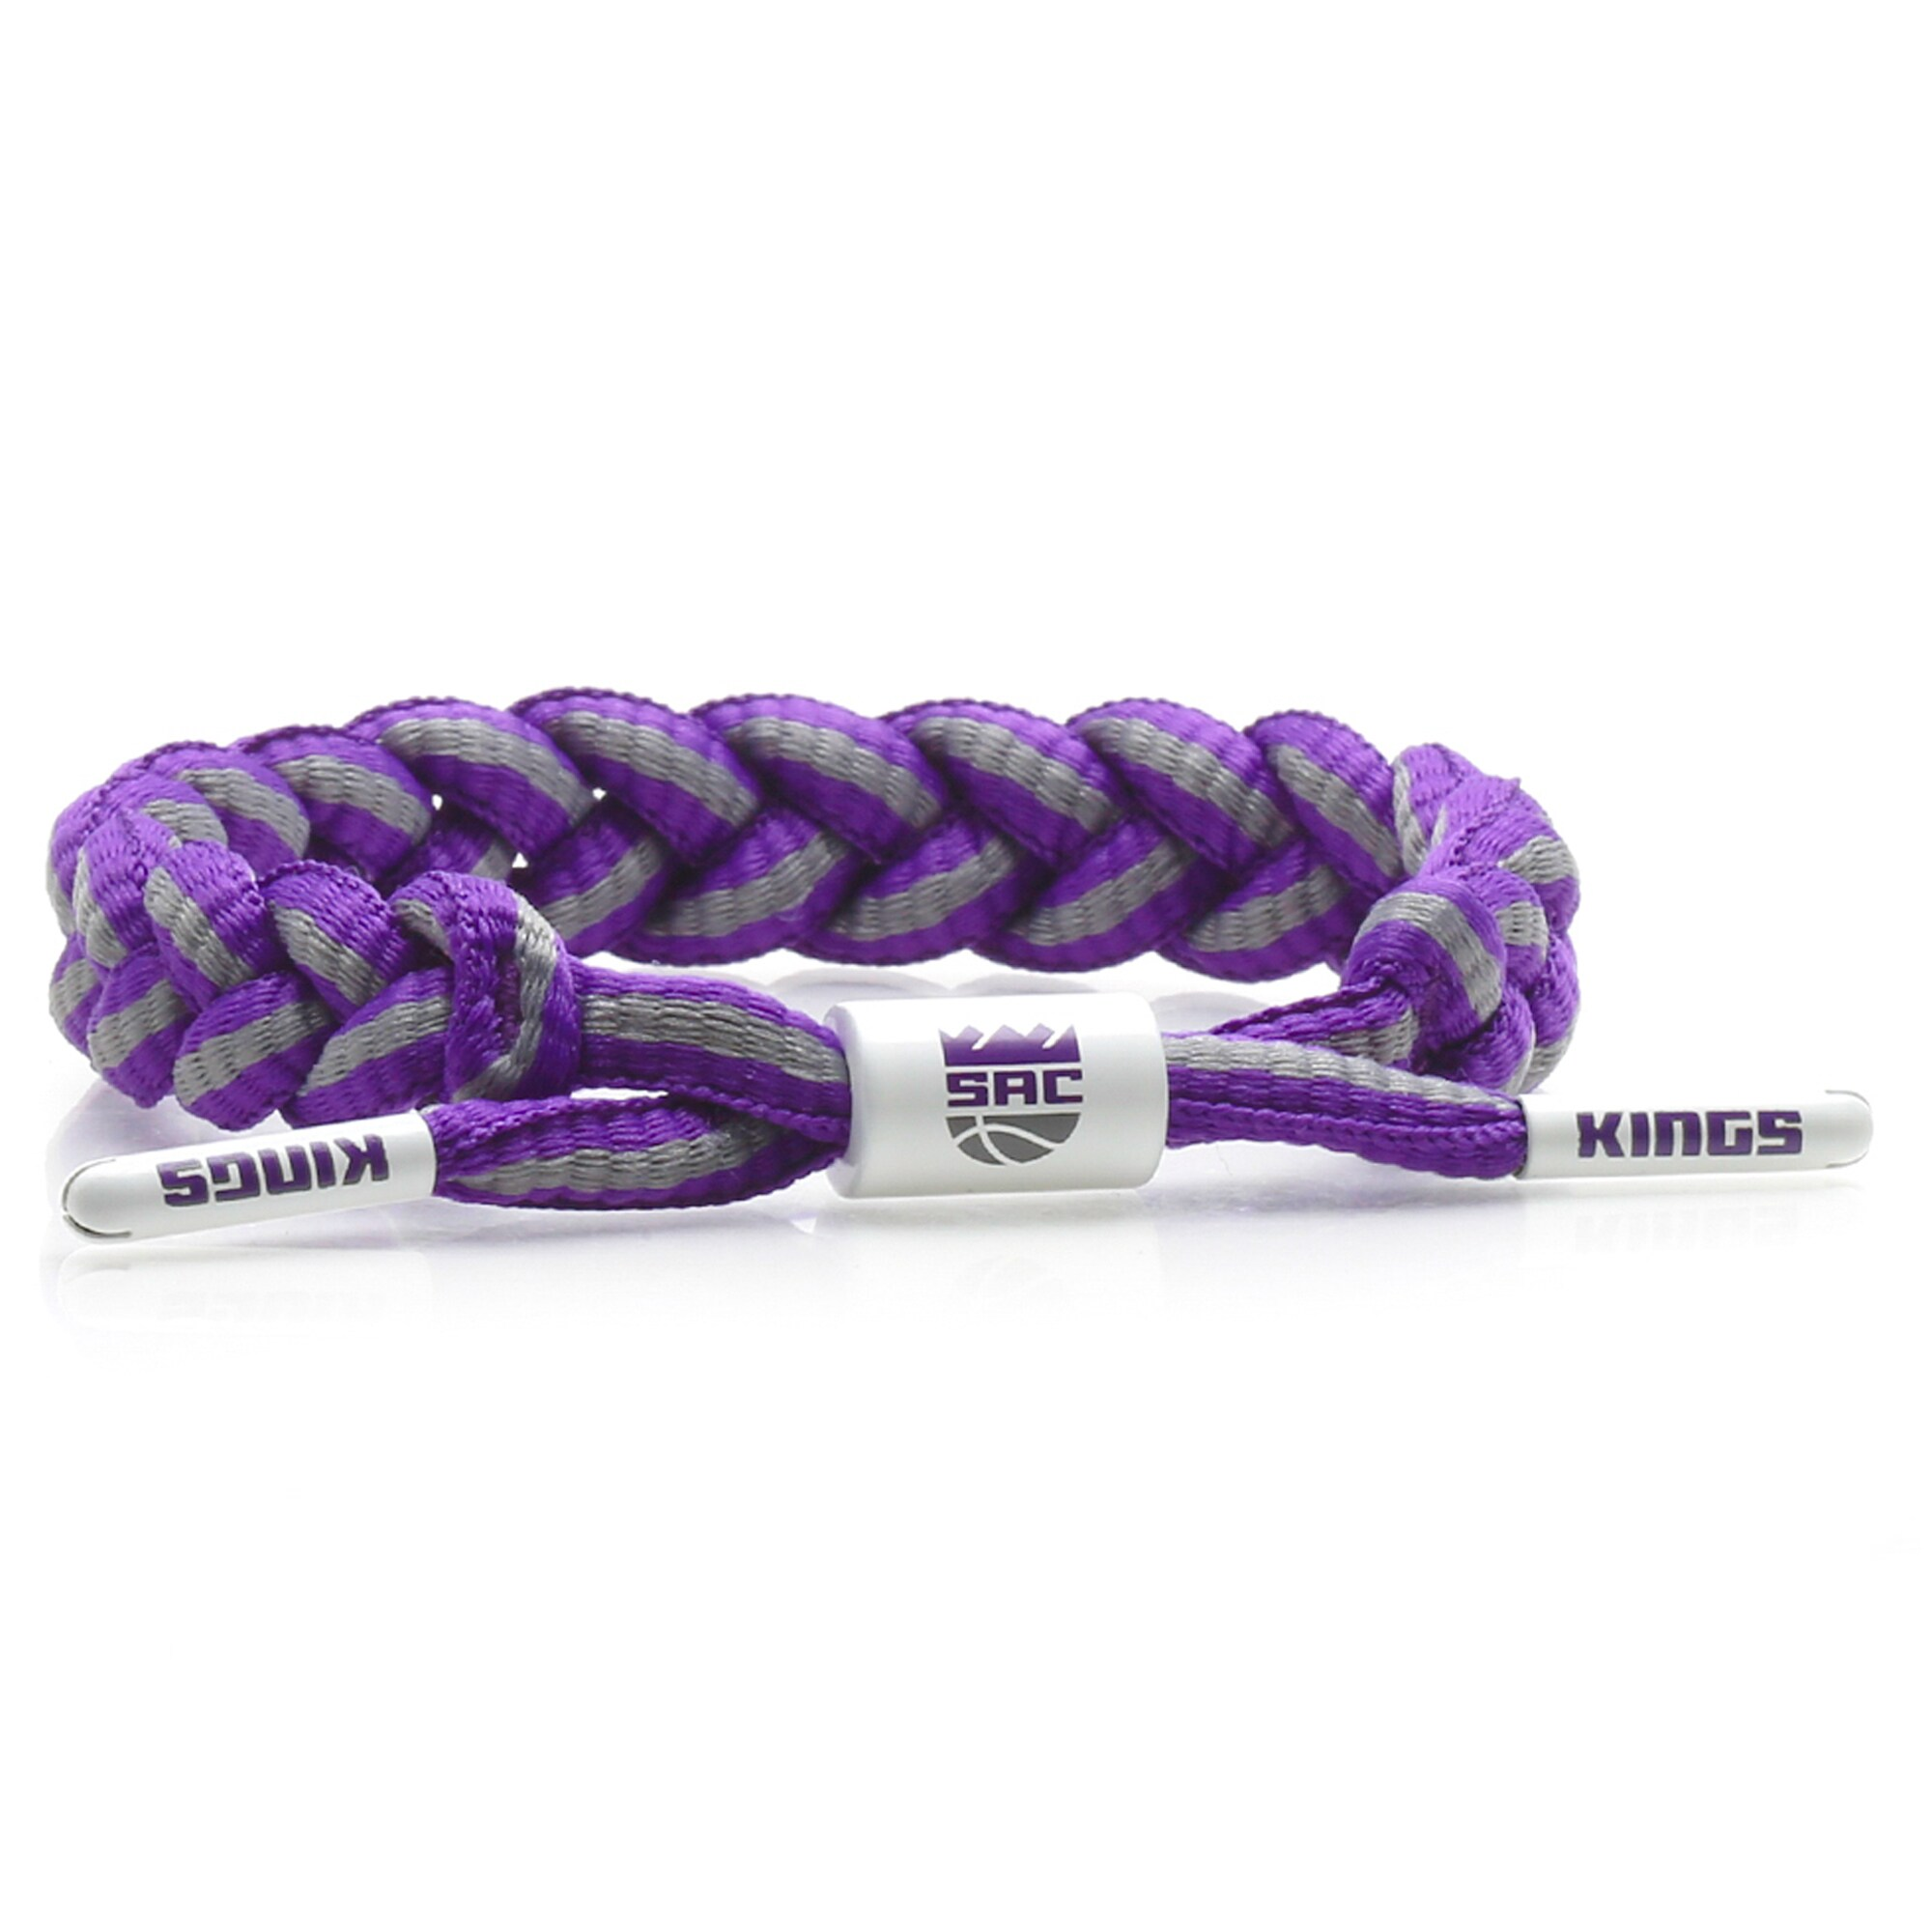 Sacramento Kings Rastaclat Team Bracelet